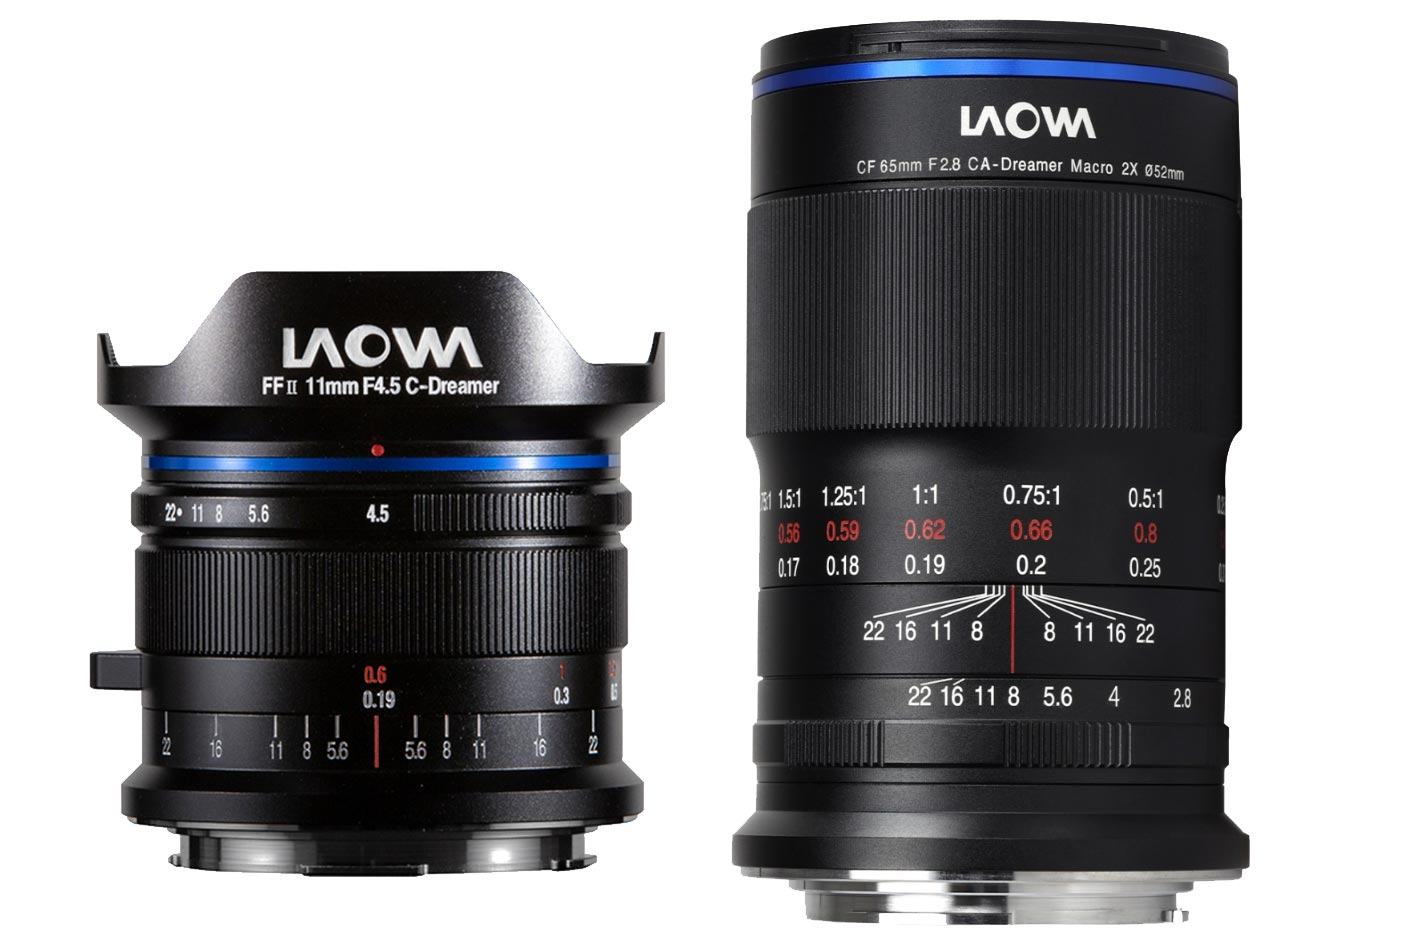 Laowa's new lenses for Canon RF and Nikon Z